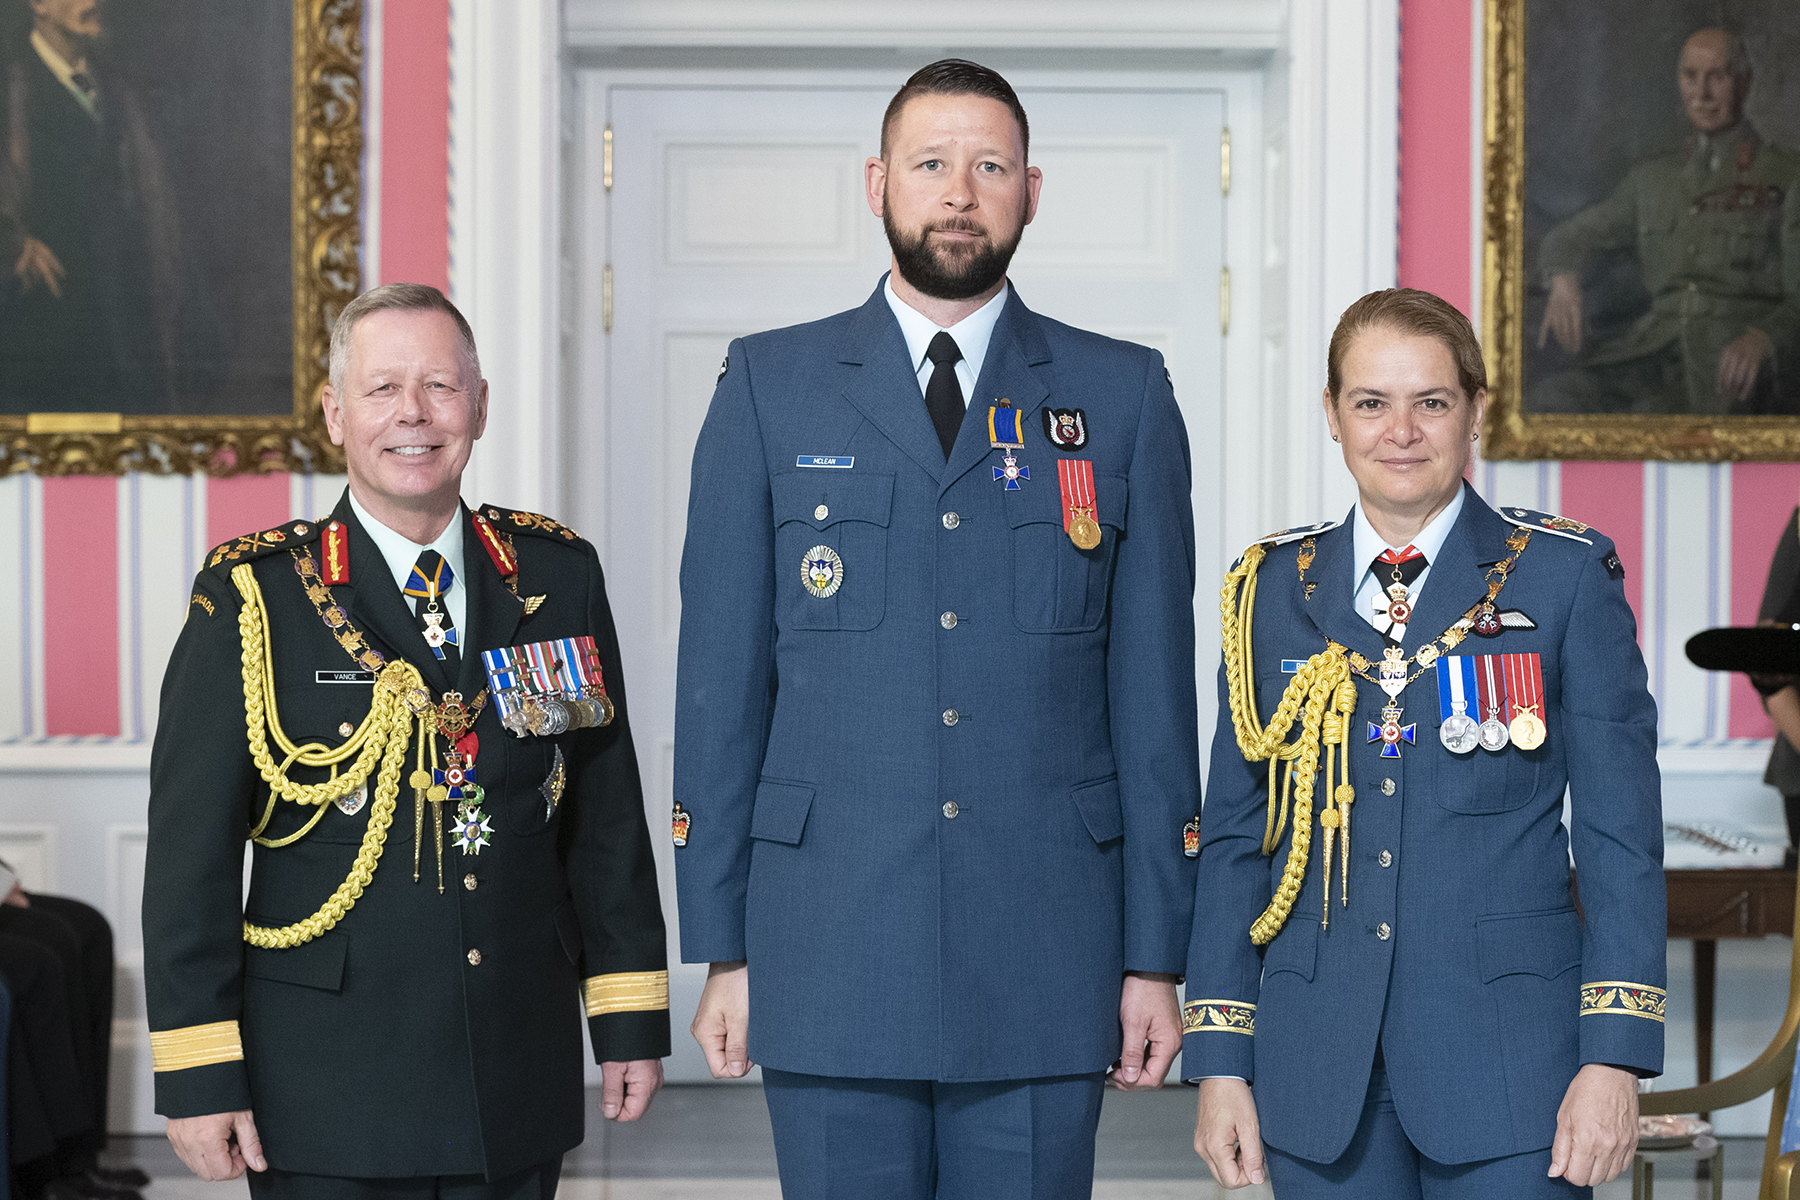 Warrant Officer Timothy Charles McLean, M.M.M., C.D., (centre) stands with Governor-General Julie Payette and Chief of the Defence Staff General Jonathan Vance after receiving the Member insignia of the Order of Military Merit from the Governor General. PHOTO: Sergeant Johanie Maheu, Rideau Hall, © OSGG, GG05-2019-0118-048